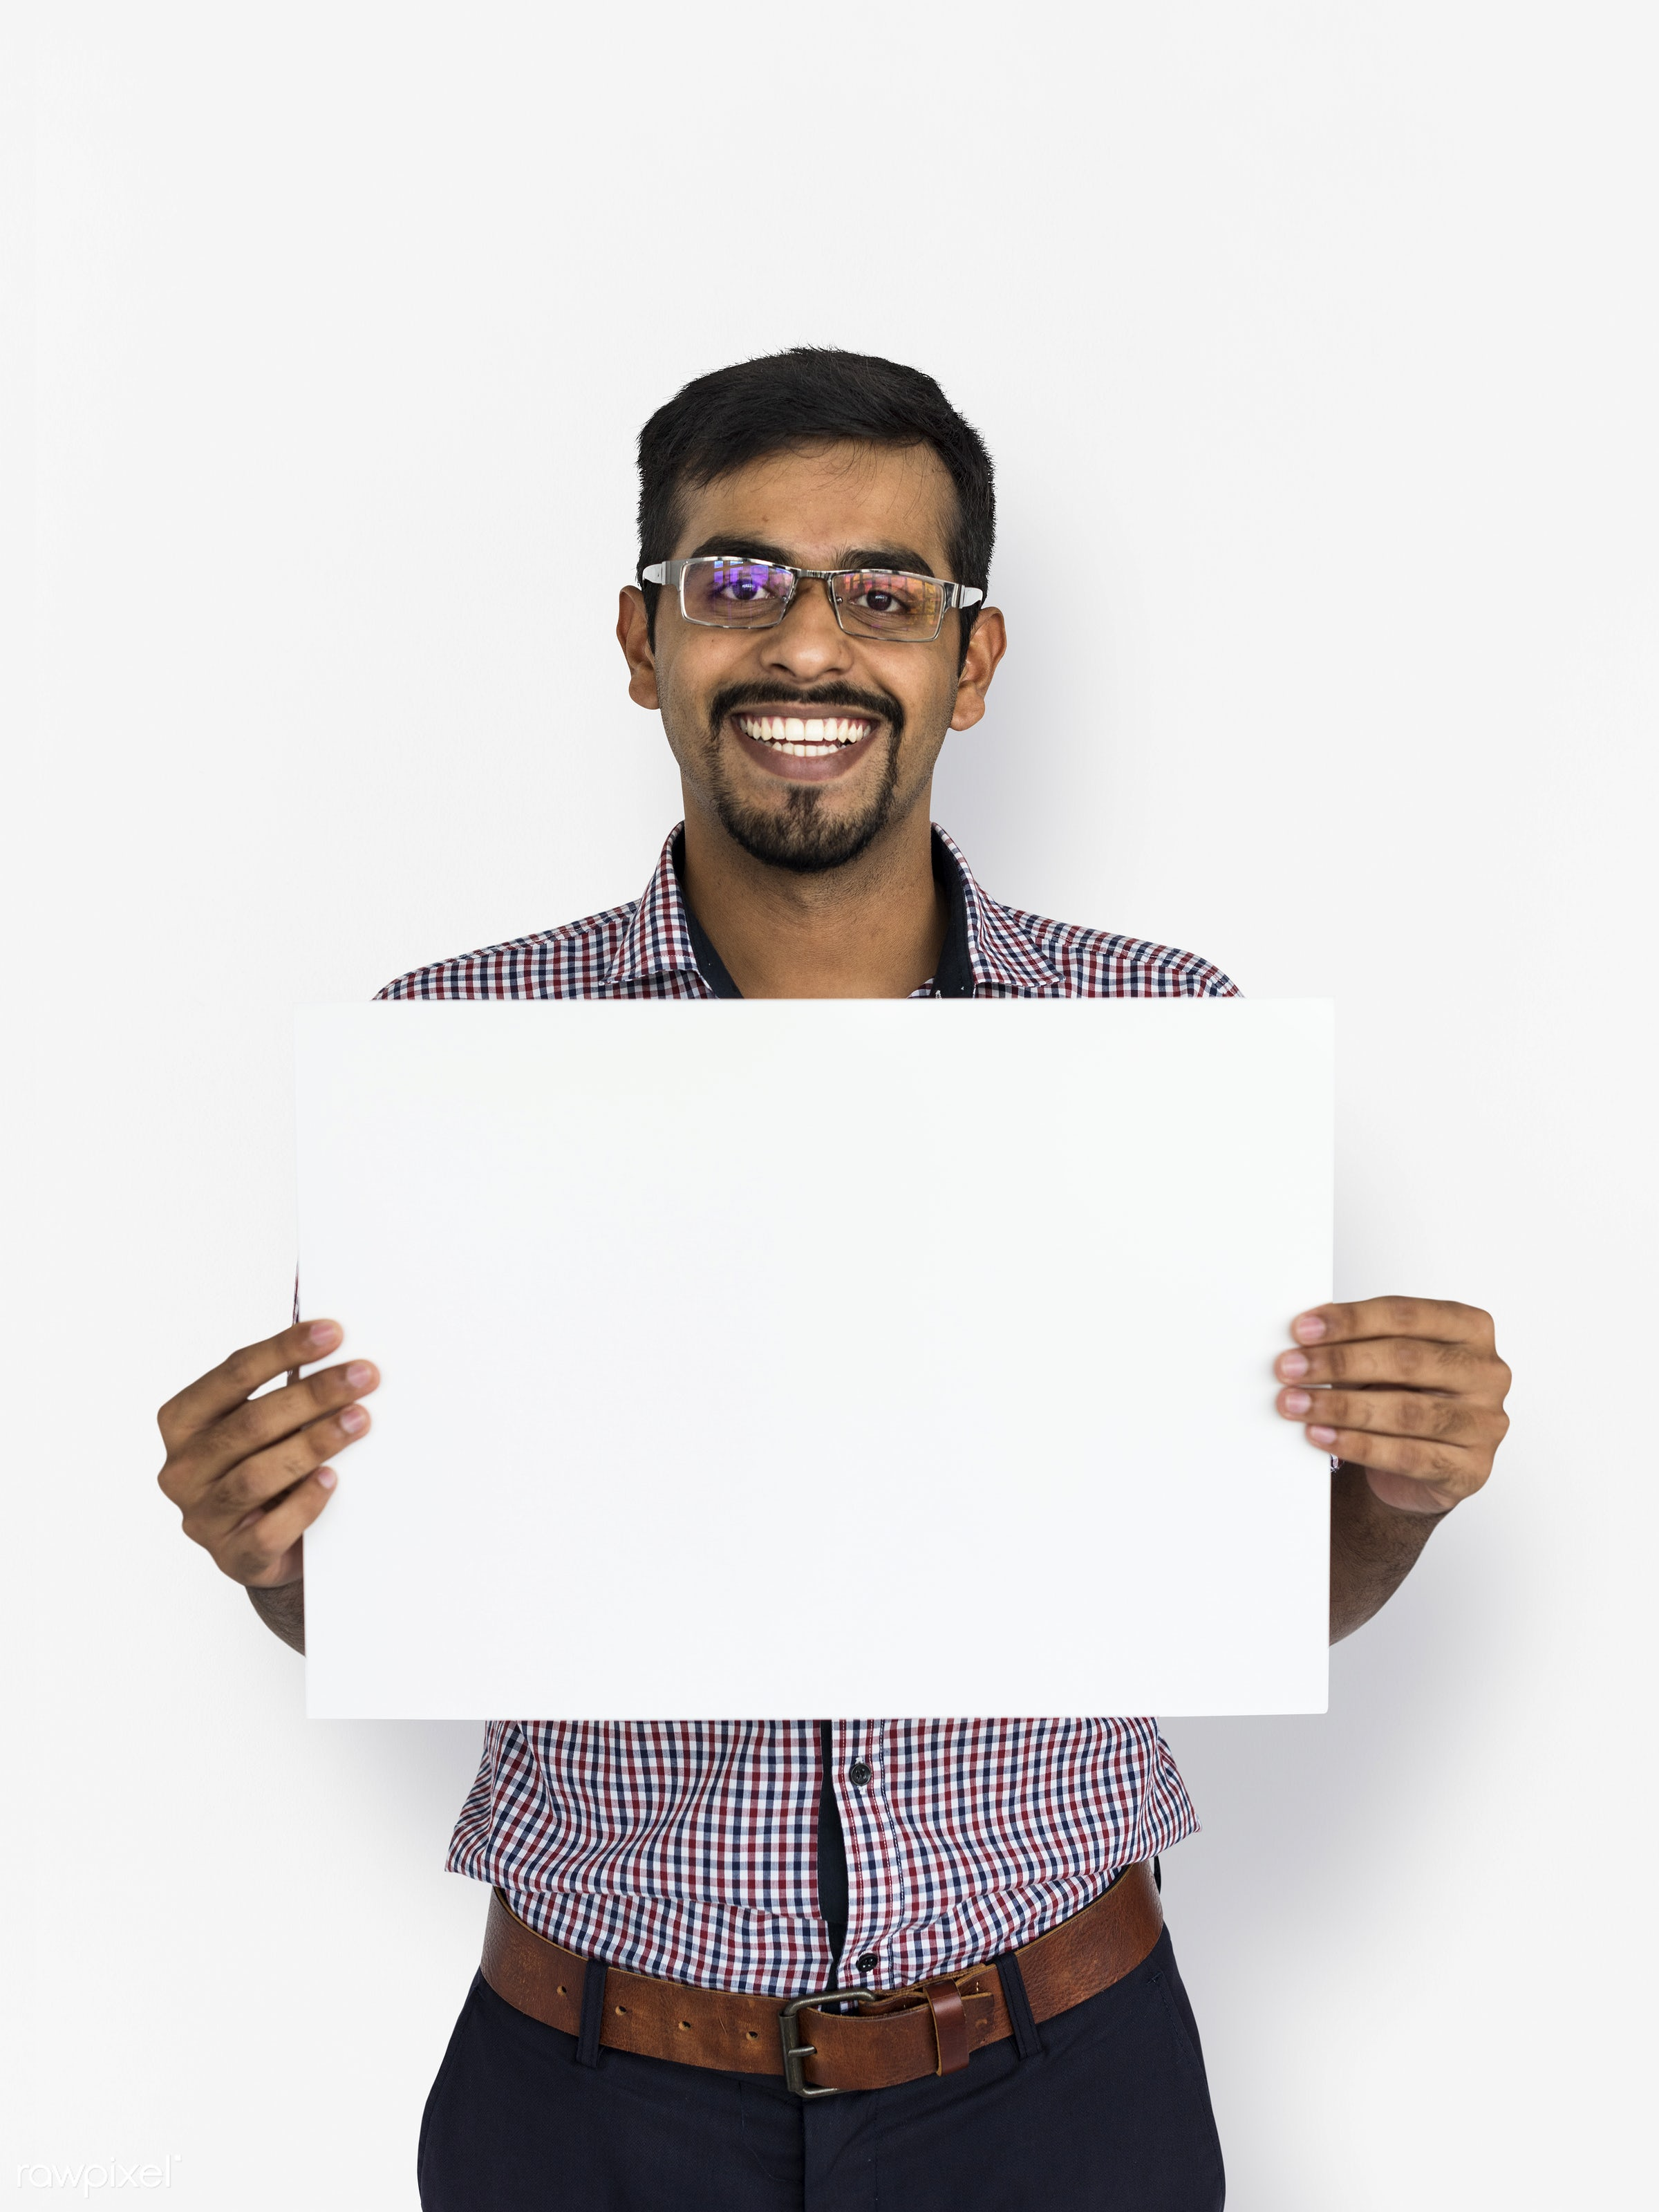 studio, expression, copy space, graphic, person, visual art, be creative, creativity, placard, man, isolated, creative, male...